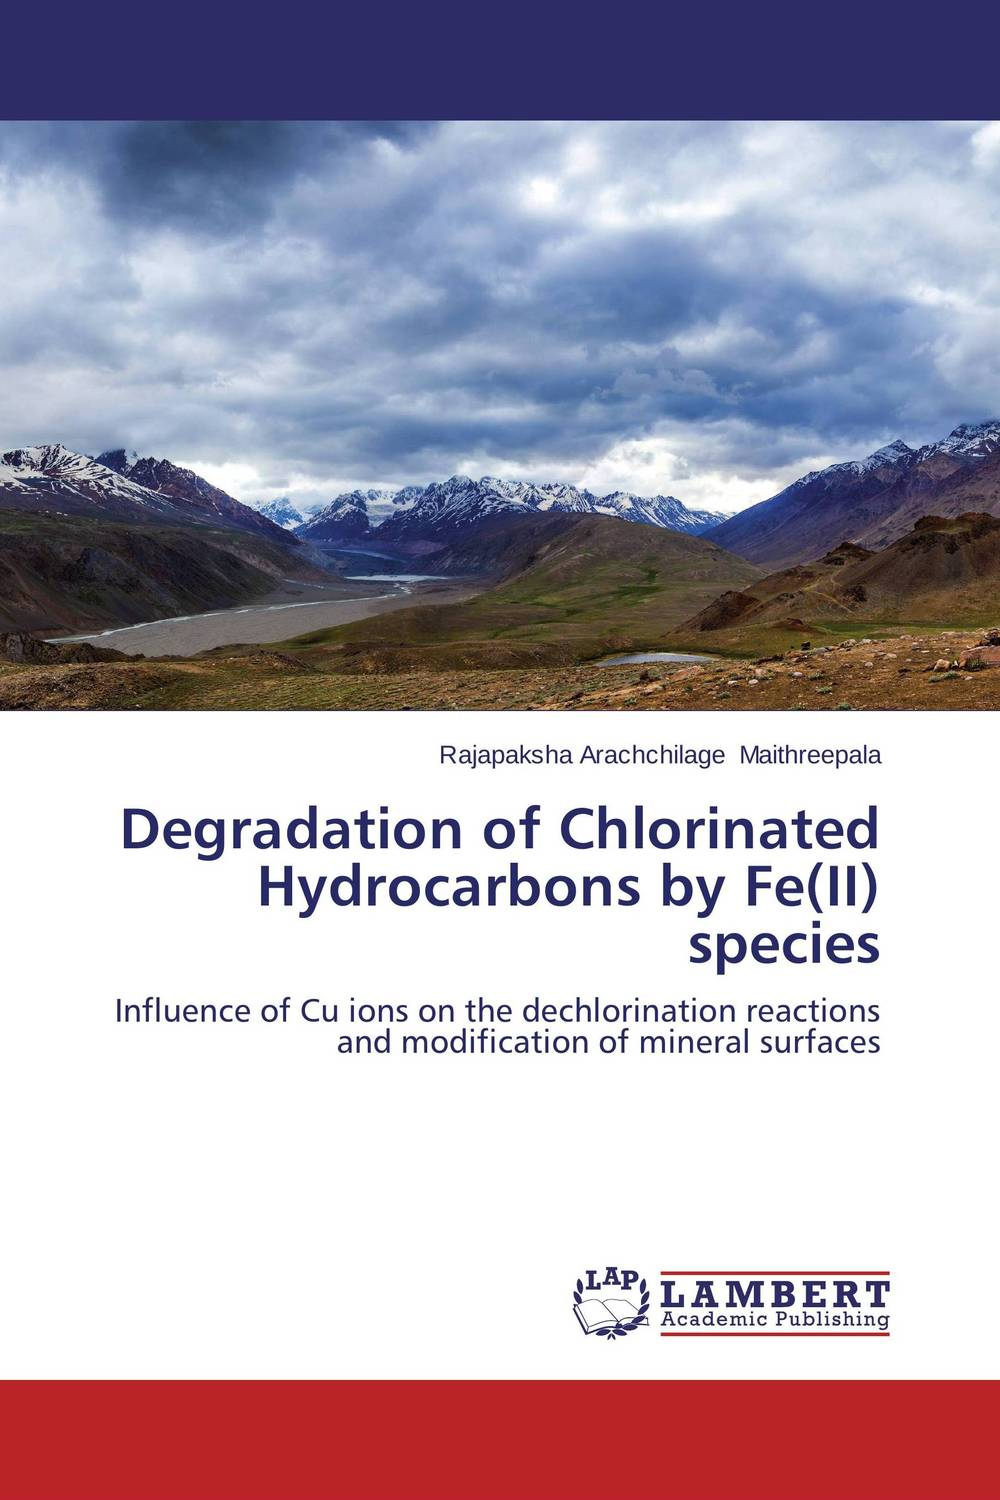 Degradation of Chlorinated Hydrocarbons by Fe(II) species